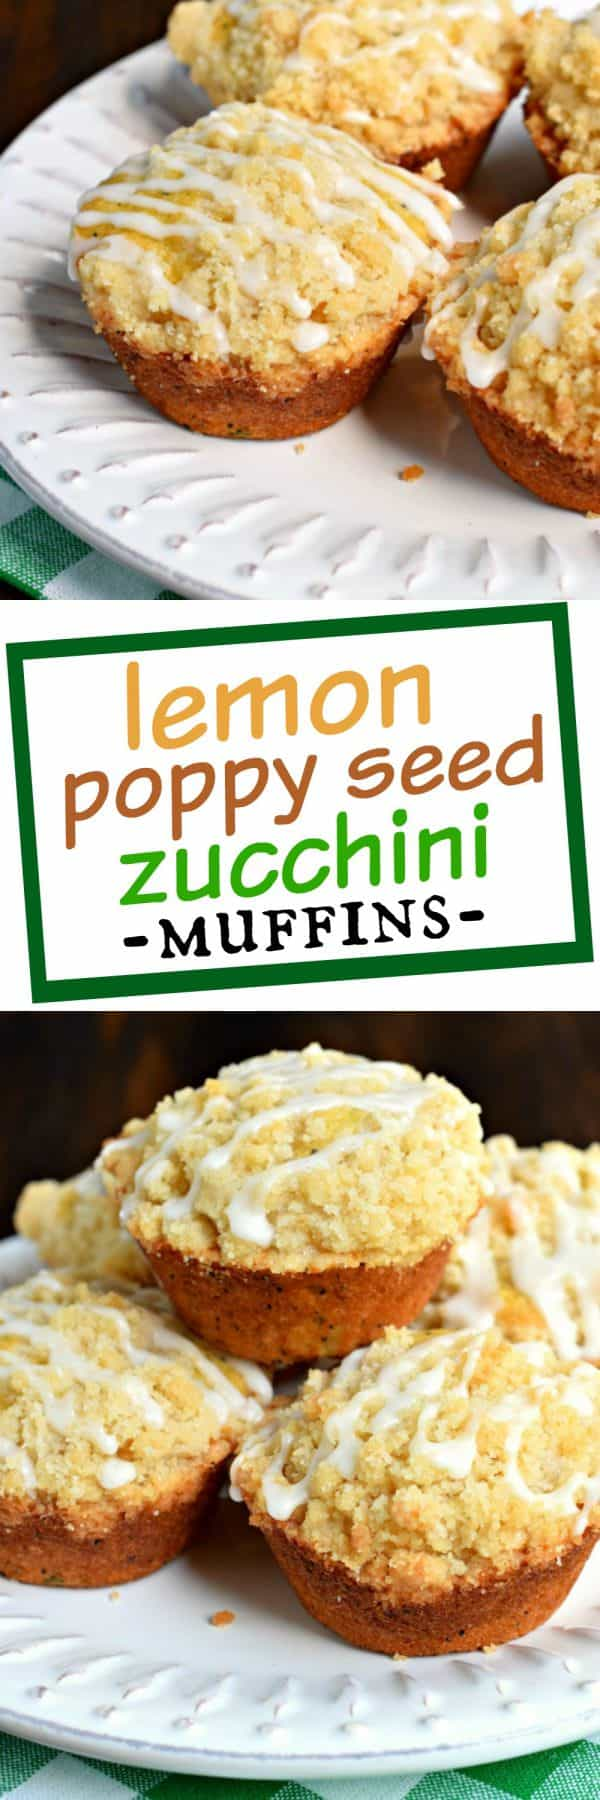 Use up some of the summer zucchini with these incredibly moist and delicious Lemon Poppy Seed Zucchini Muffins. The crumb topping and sweet lemon glaze add so much texture and flavor!